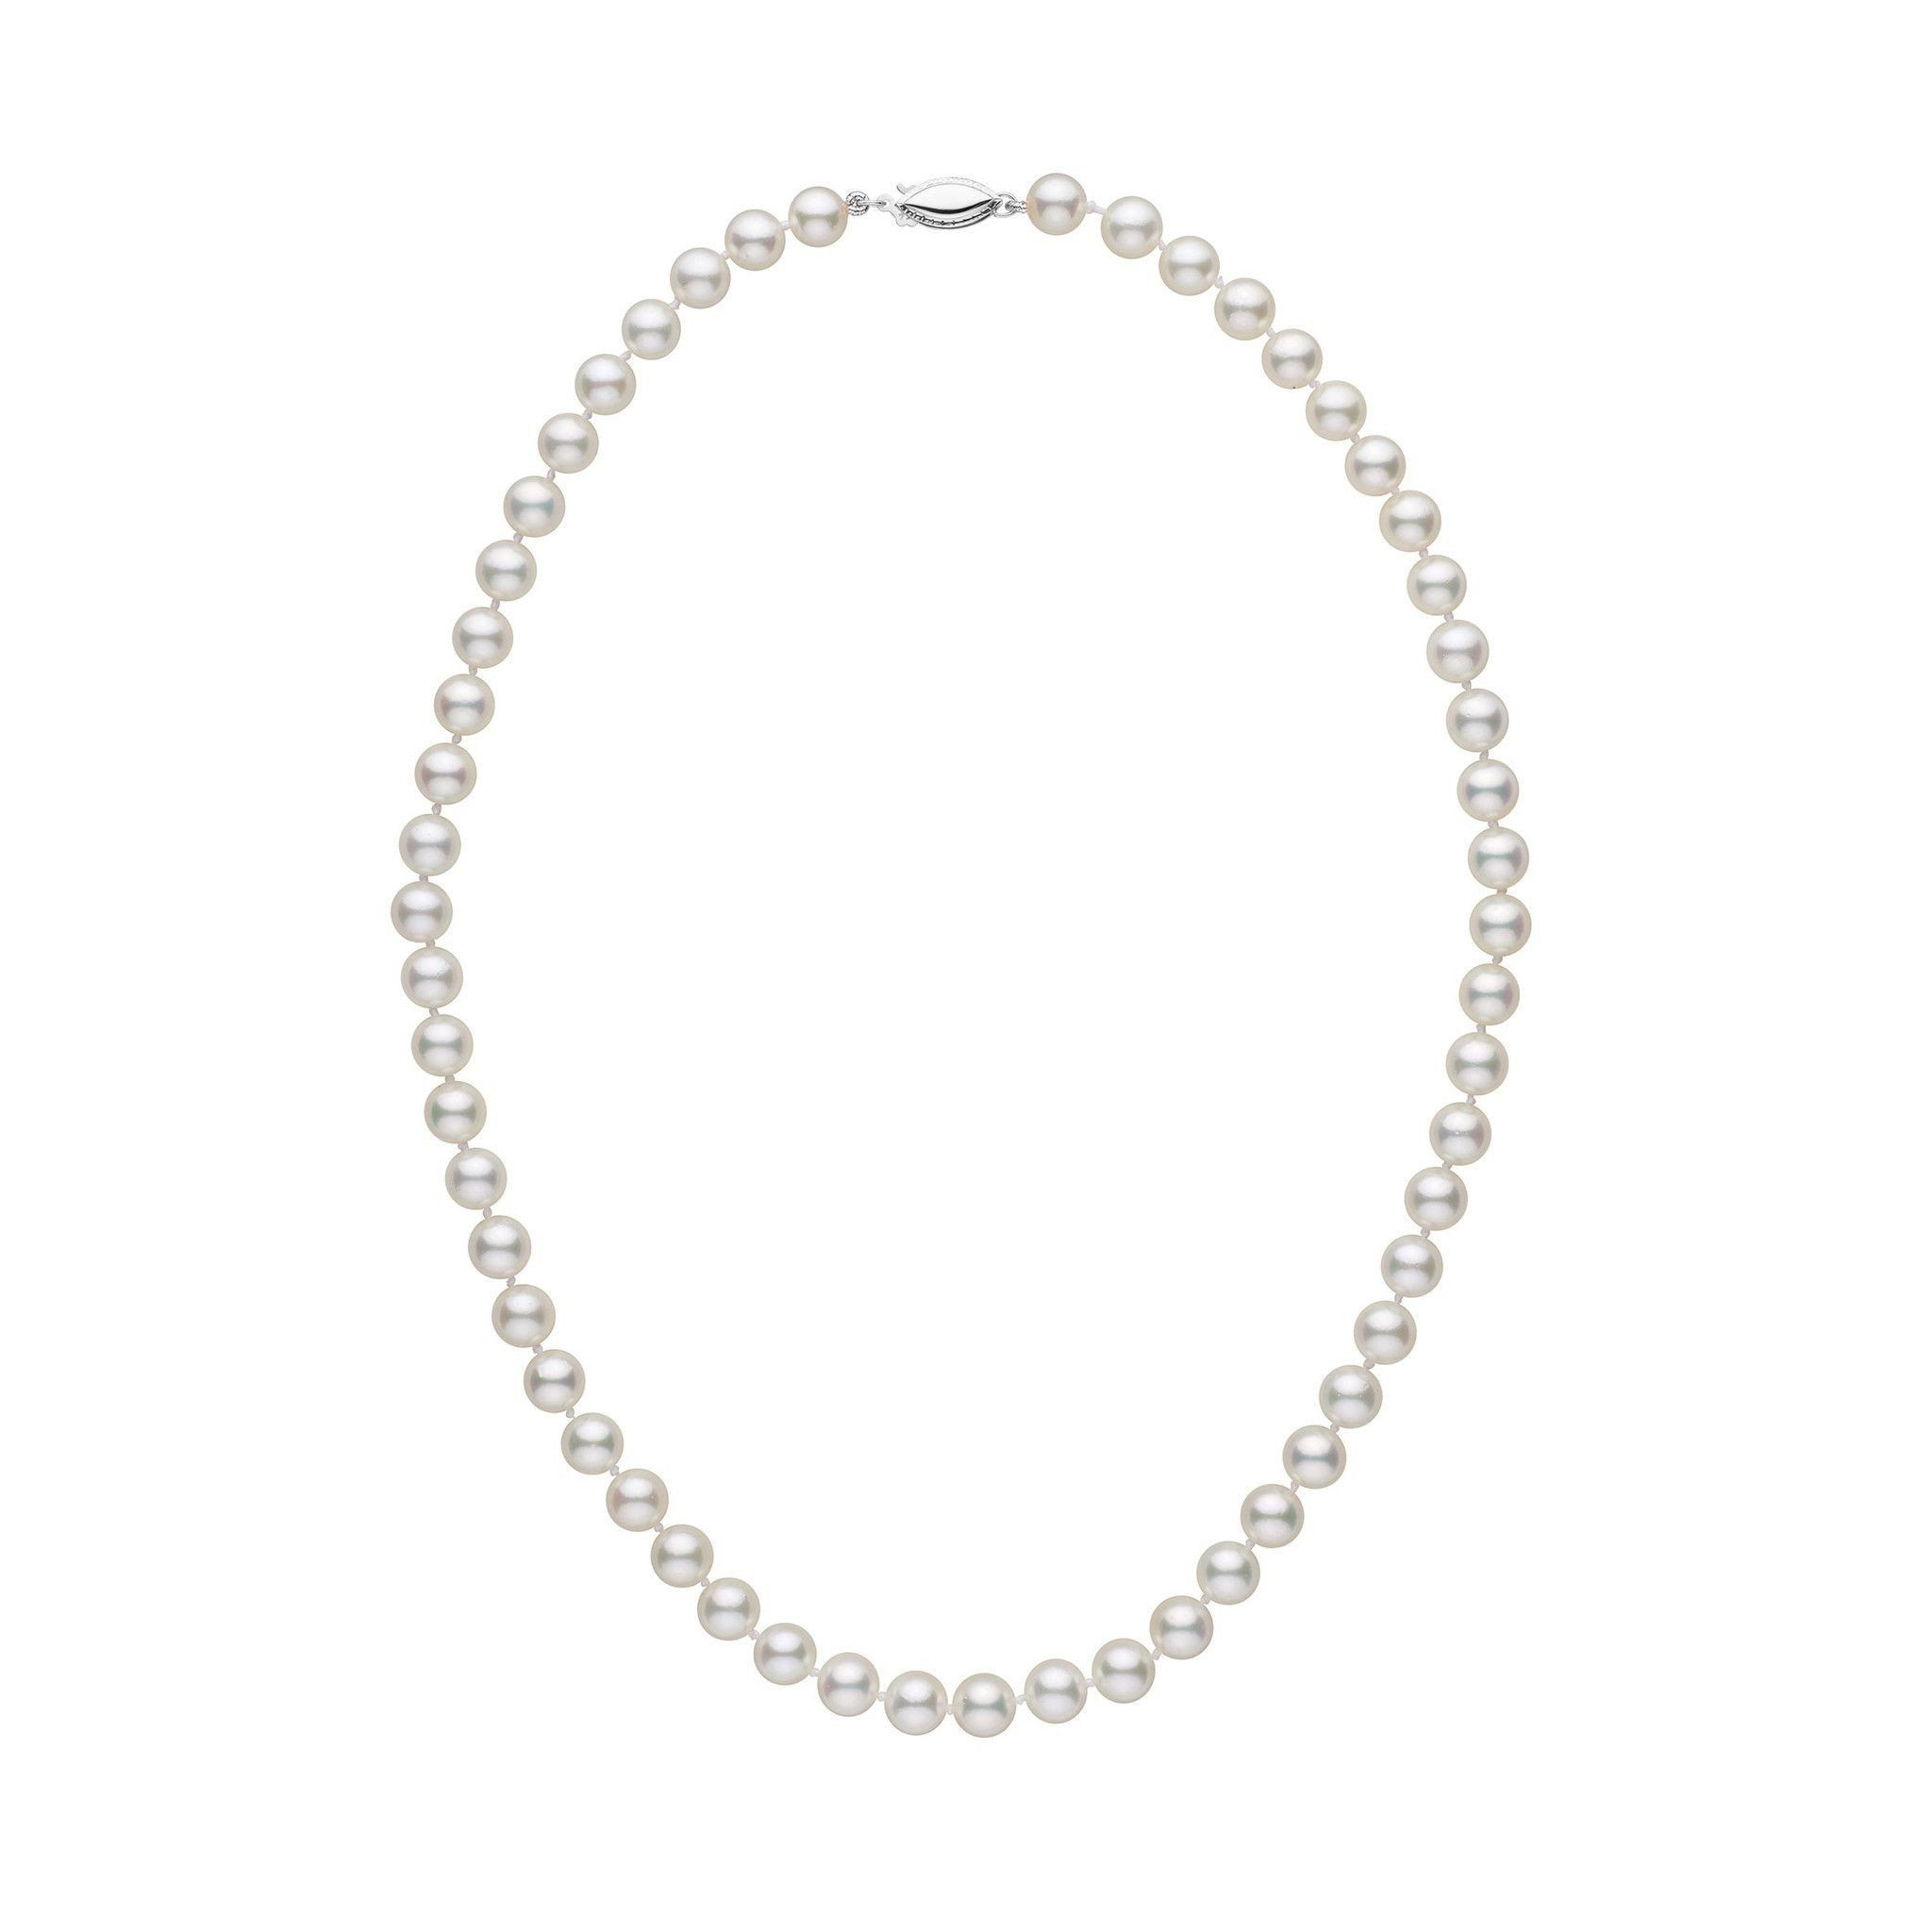 6.5-7.0 mm 16 Inch AA+ White Akoya Pearl Necklace